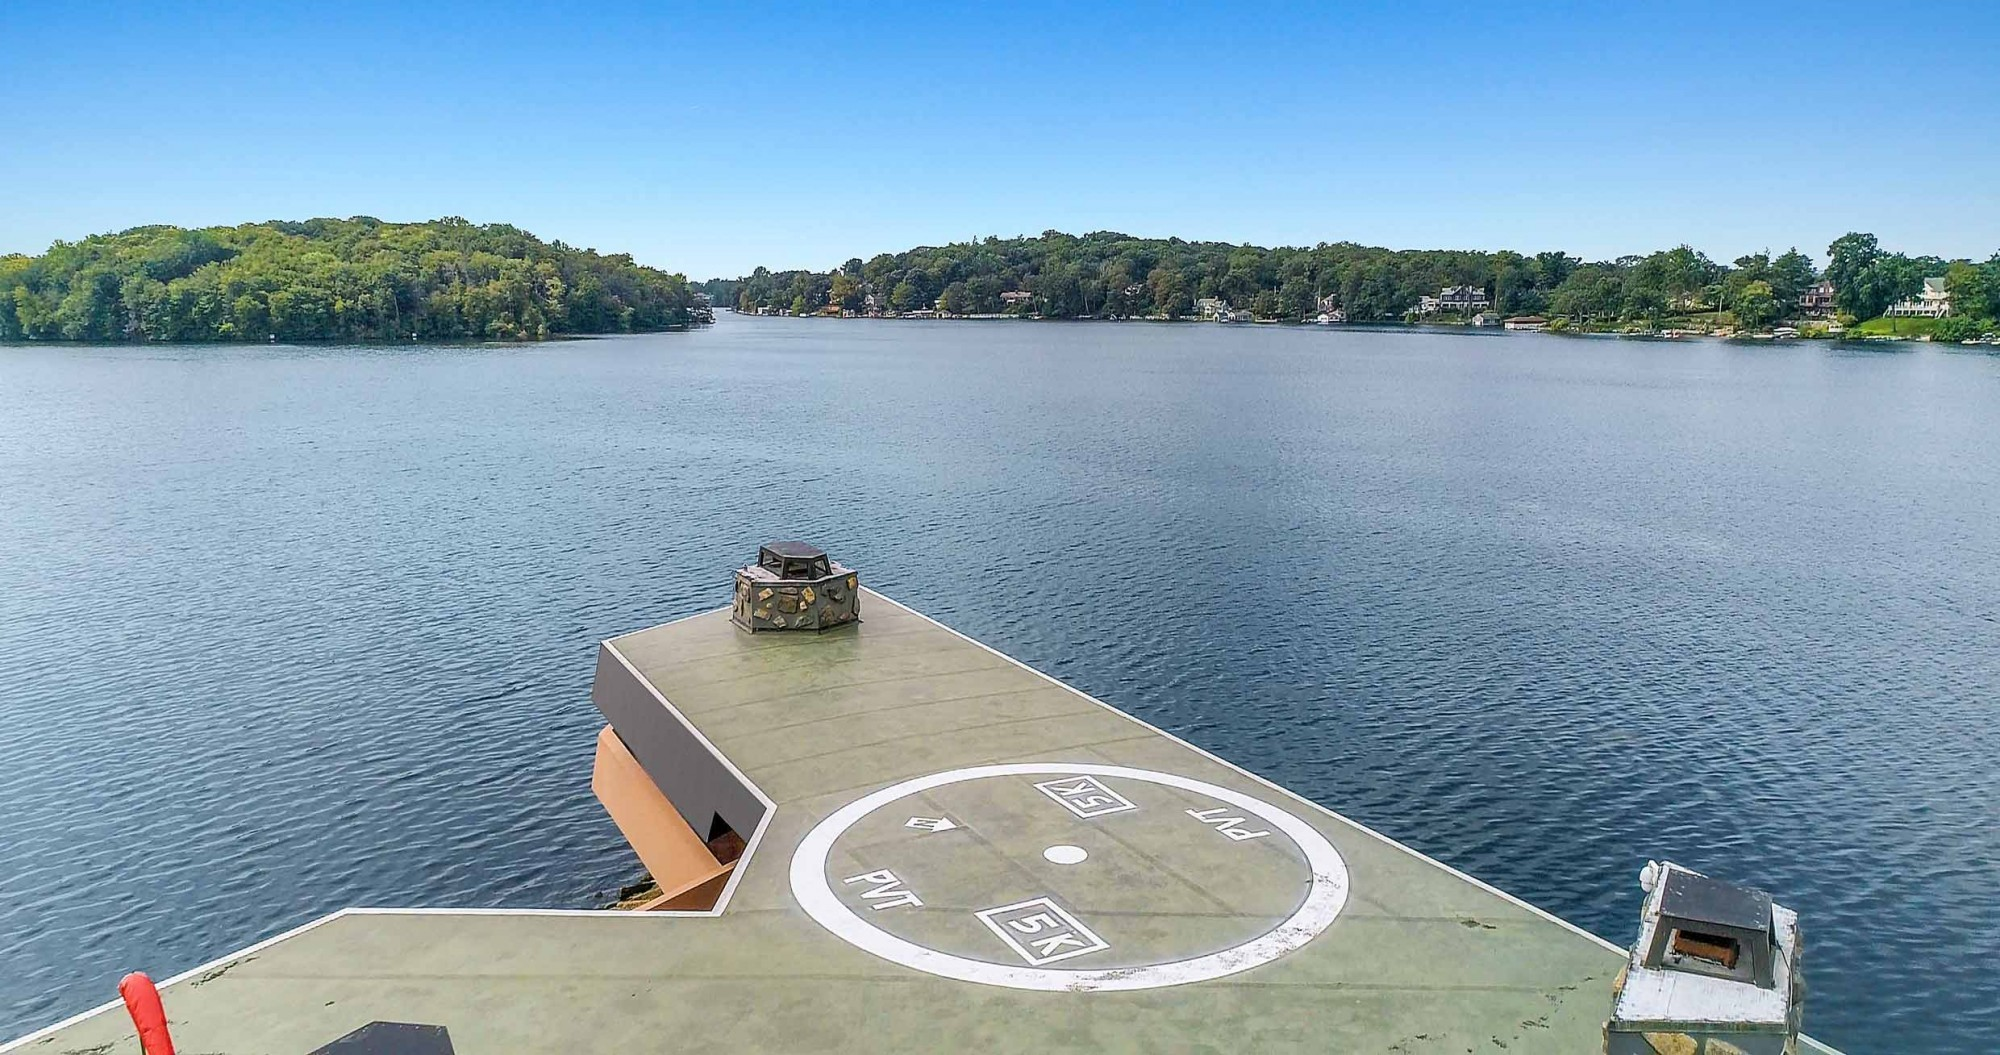 Helikopterplatz auf Petra-Insel in Mahopac-See